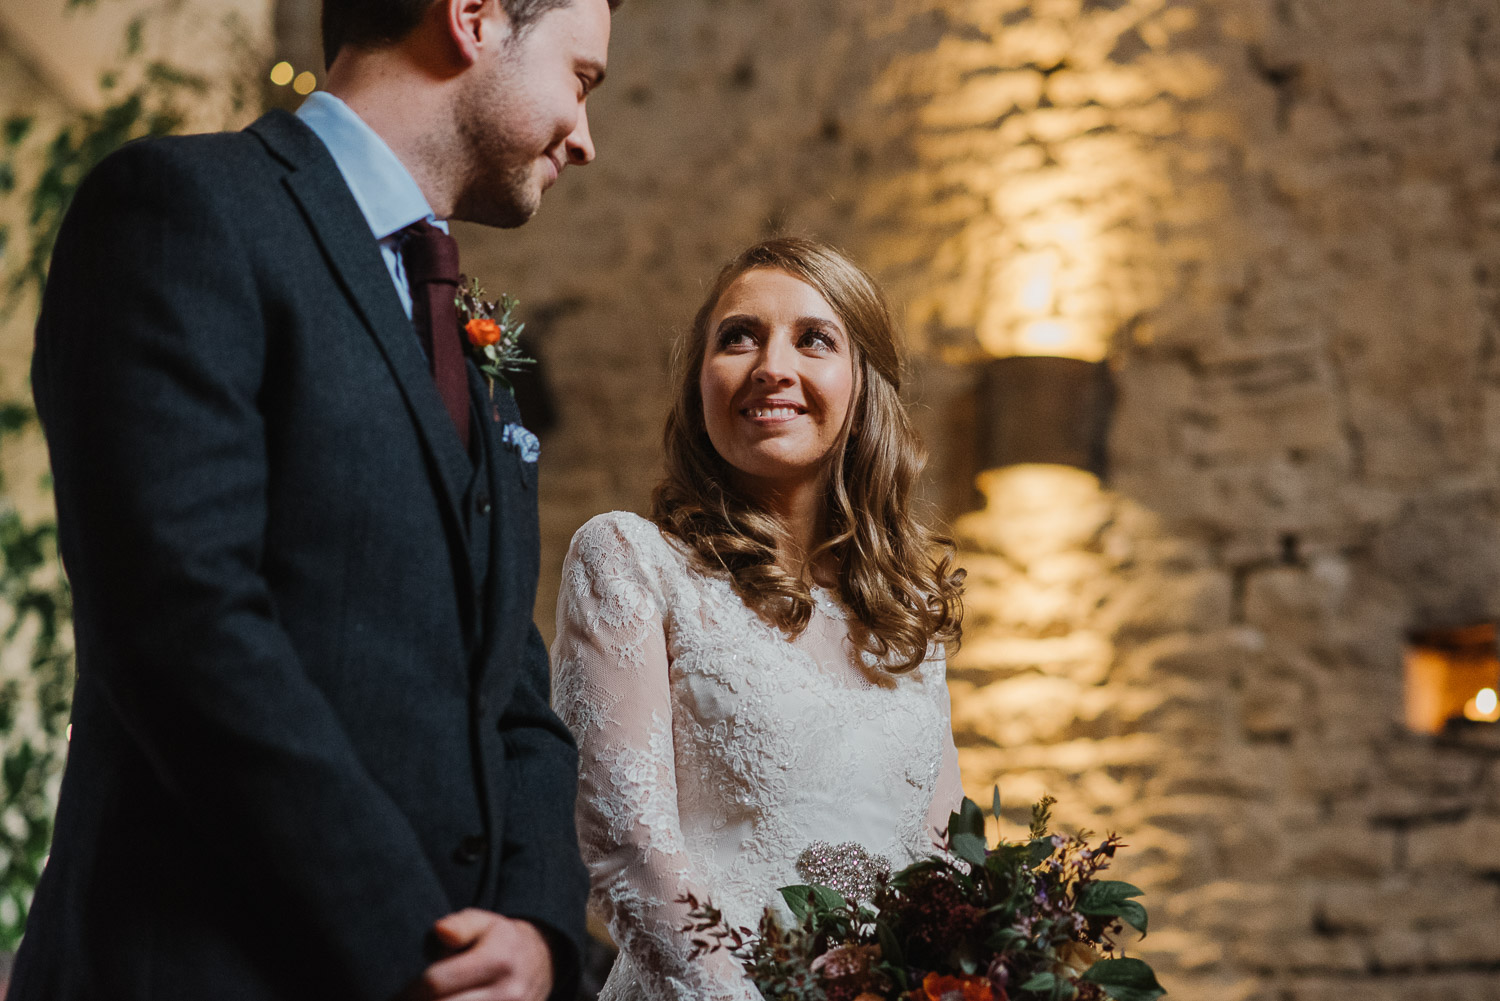 bride smiling at groom by creative and alternative london wedding photographer the shannons photography